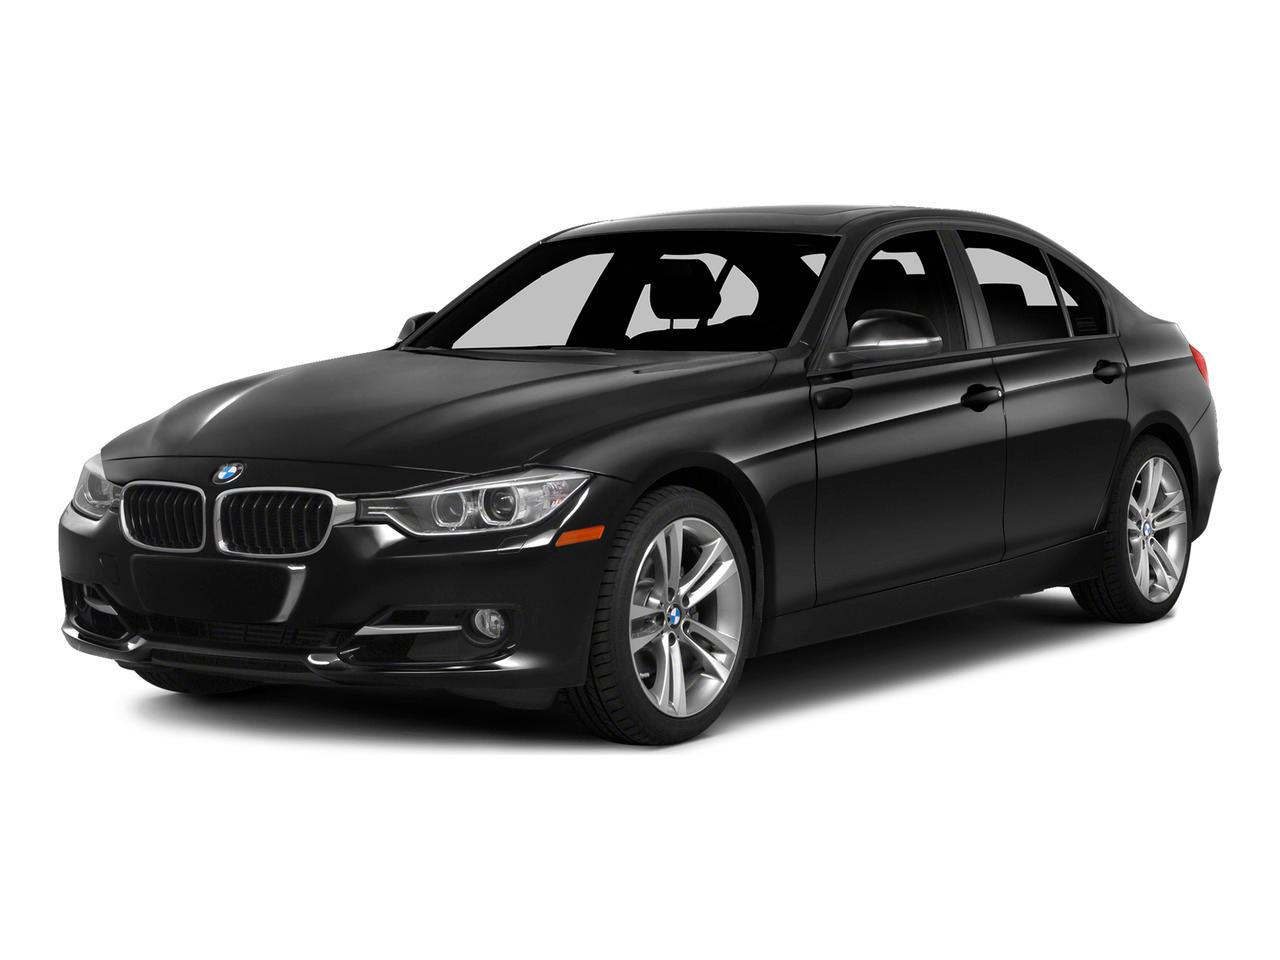 2015 BMW 320i xDrive Vehicle Photo in DANVILLE, KY 40422-1146